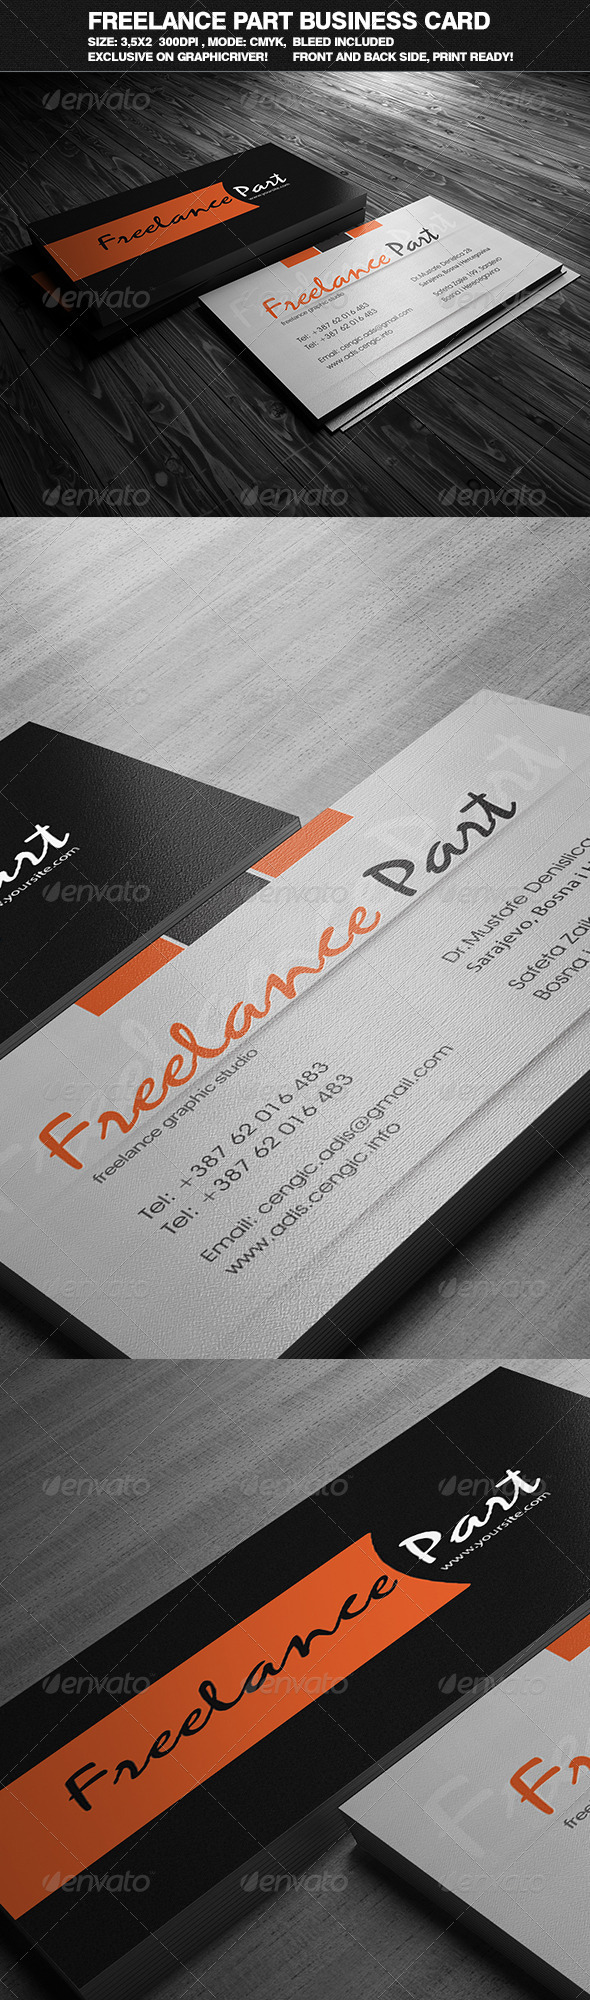 GraphicRiver Freelance Part Business Card 3576161